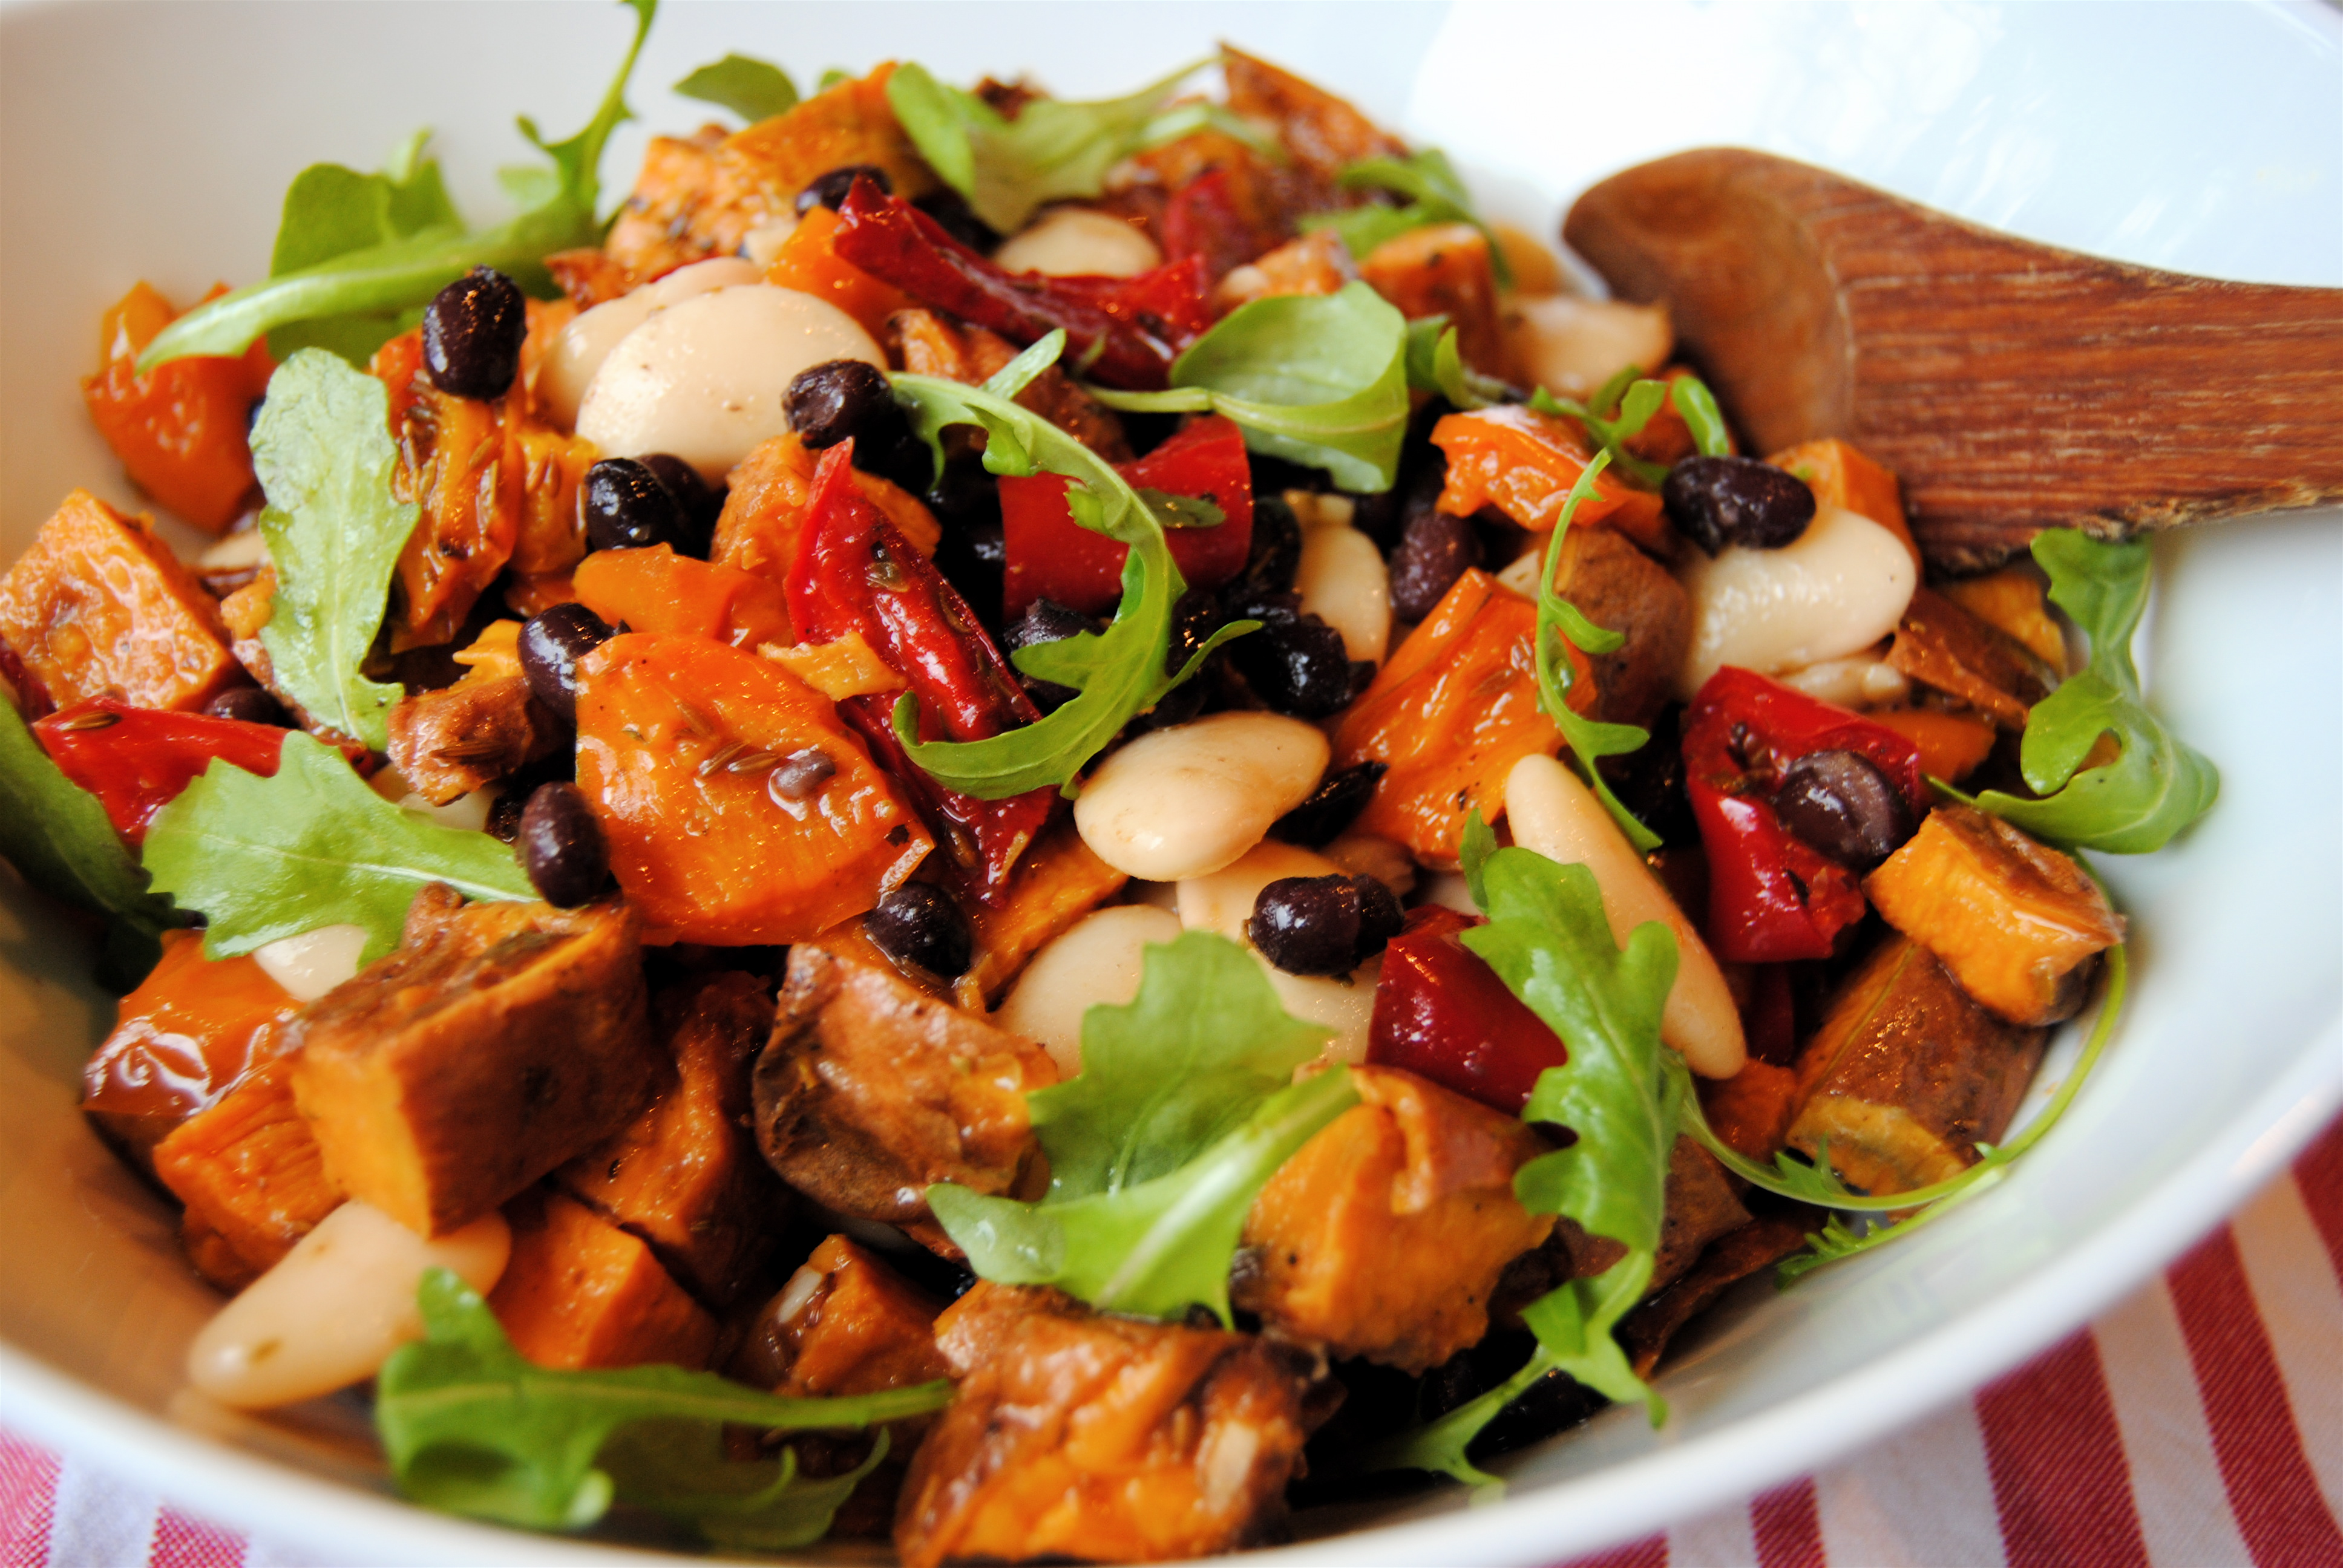 Food love recipes brazilian vegetable and salad recipes brazilian vegetable and salad recipes forumfinder Choice Image